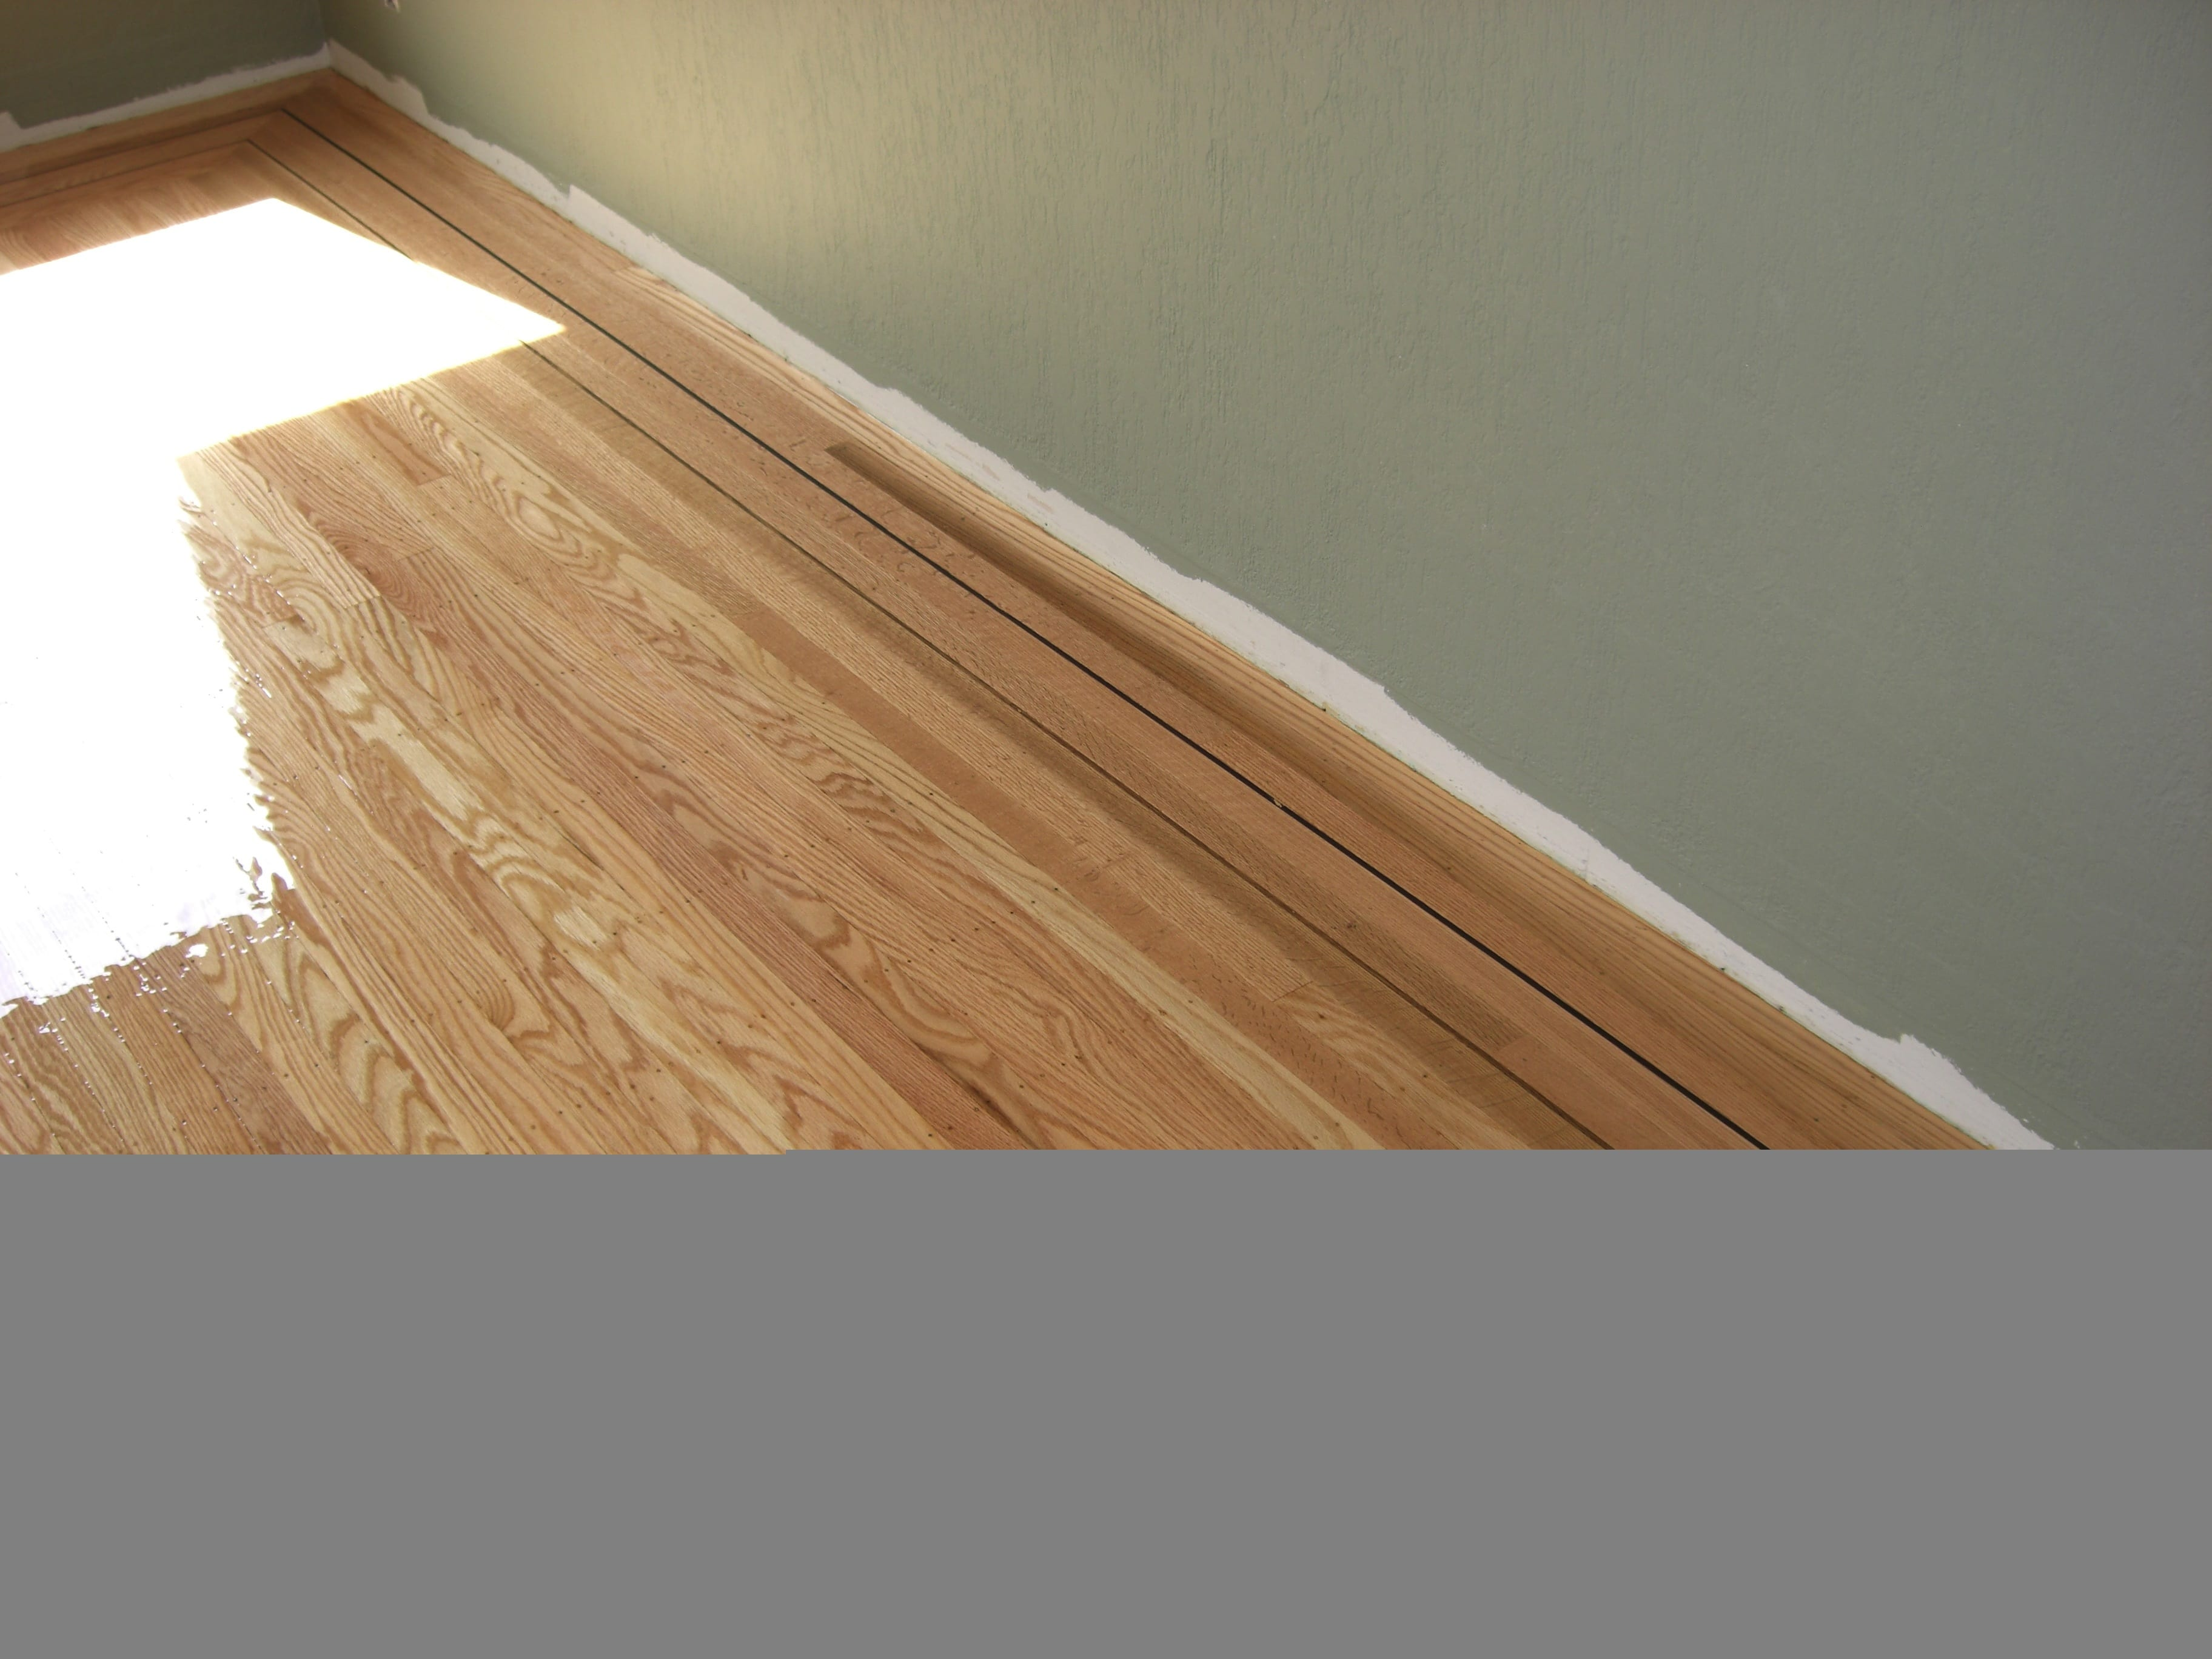 Top-nailed hardwood floor refinished